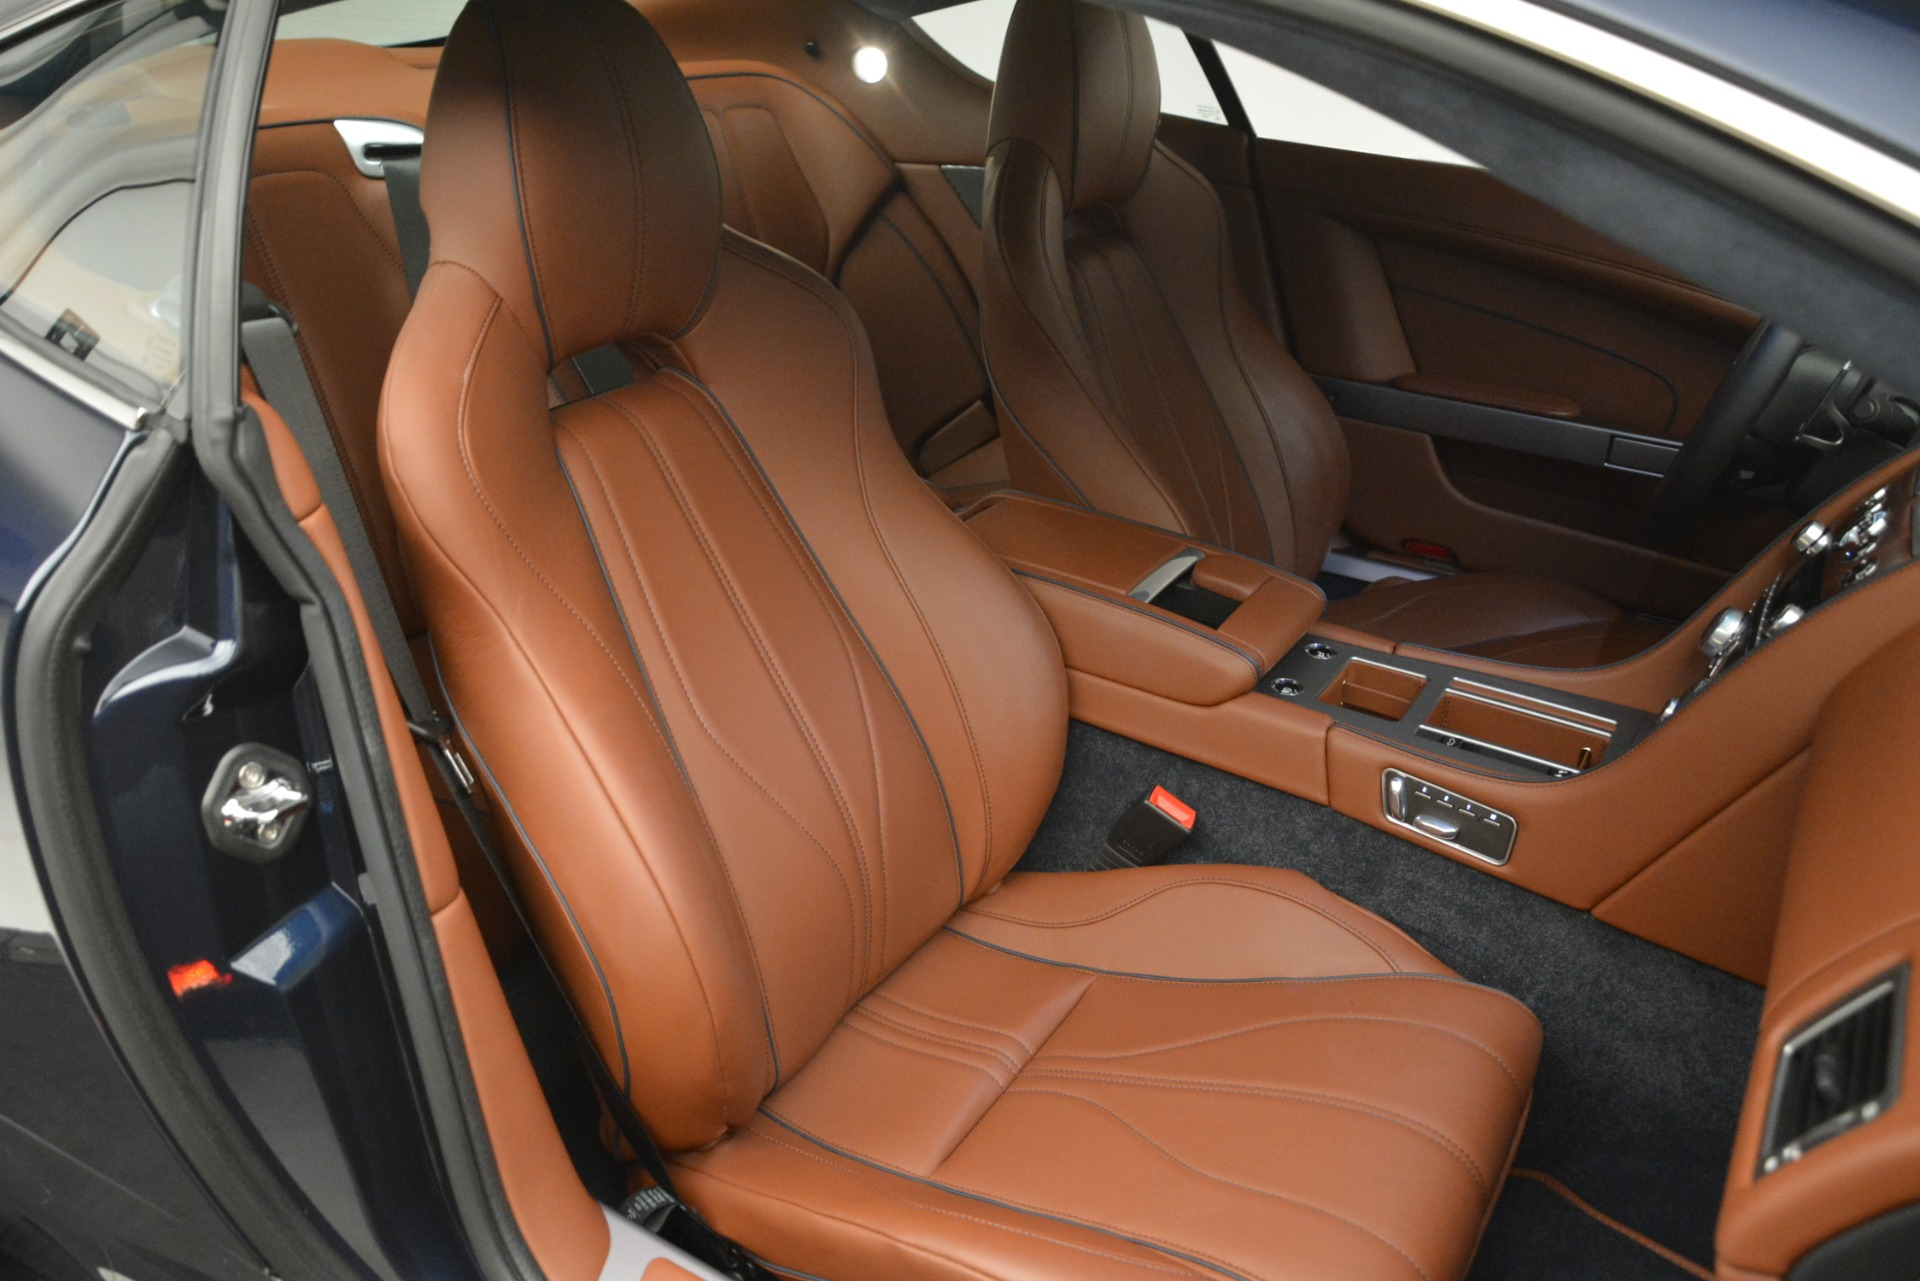 Used 2014 Aston Martin DB9 Coupe For Sale In Greenwich, CT 3010_p22